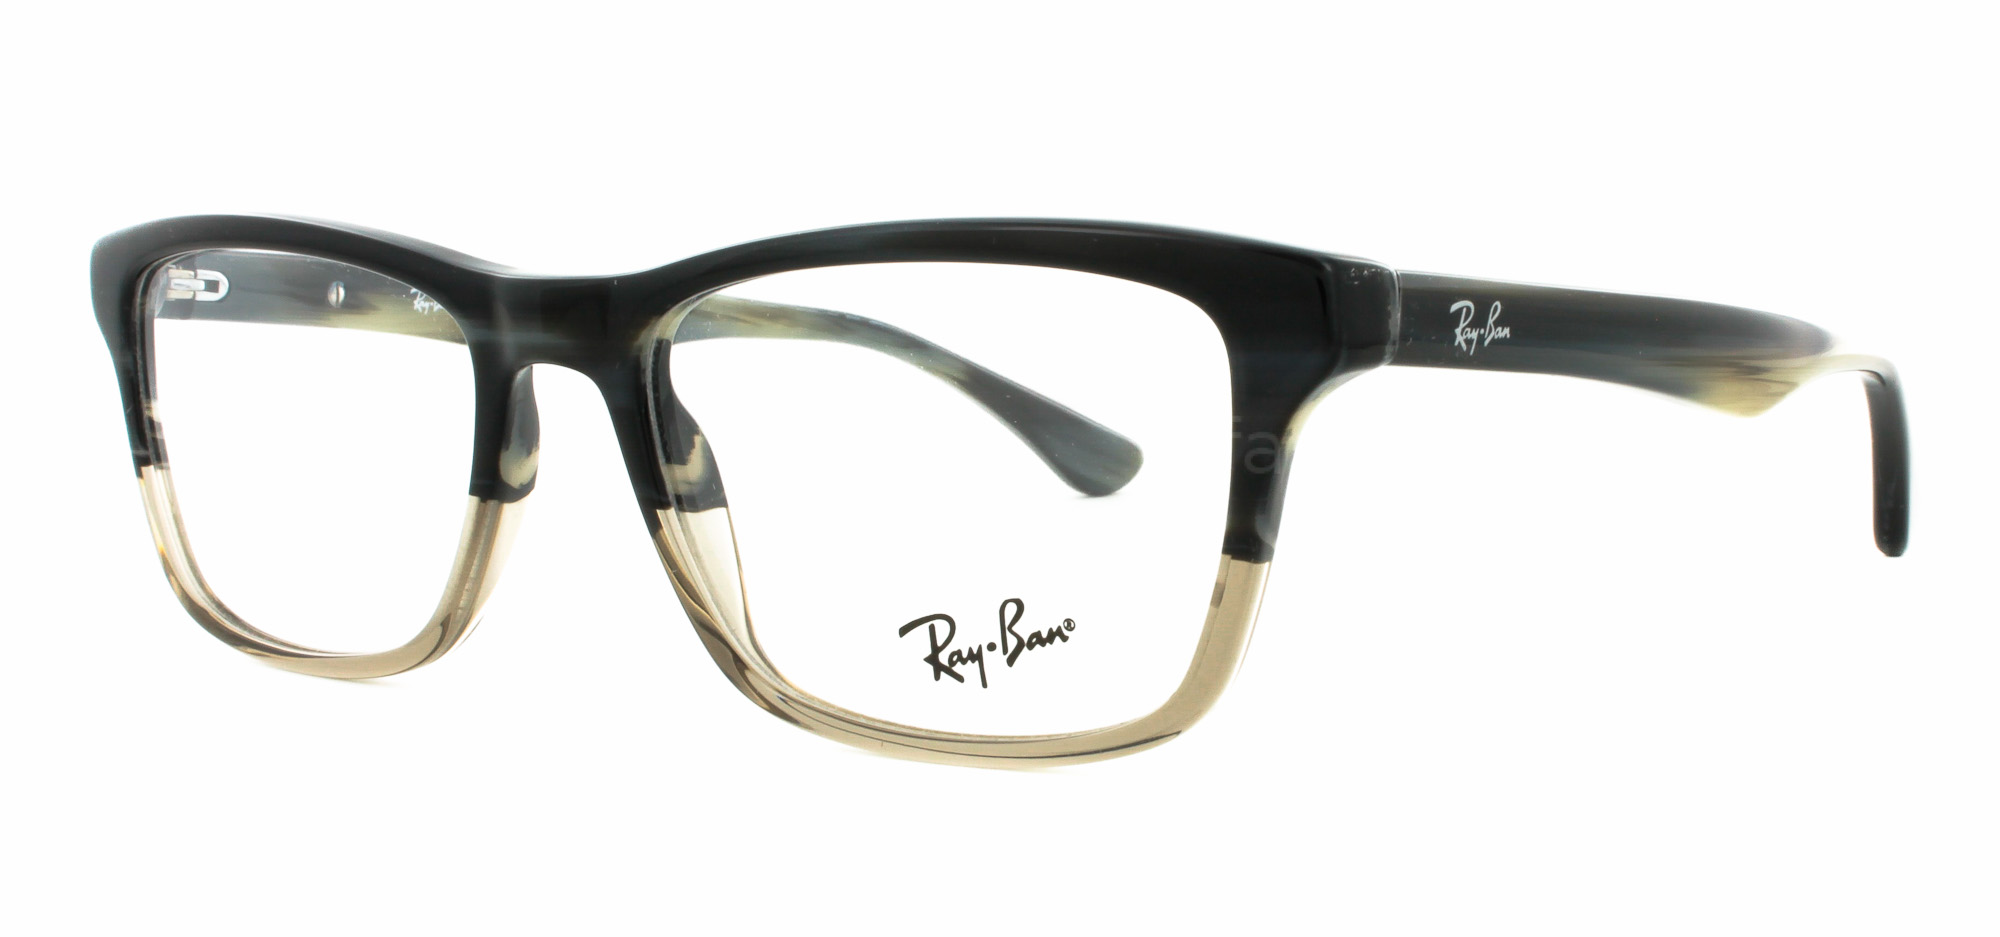 03ad211a70e Oprawki Ray Ban 5279 « One More Soul